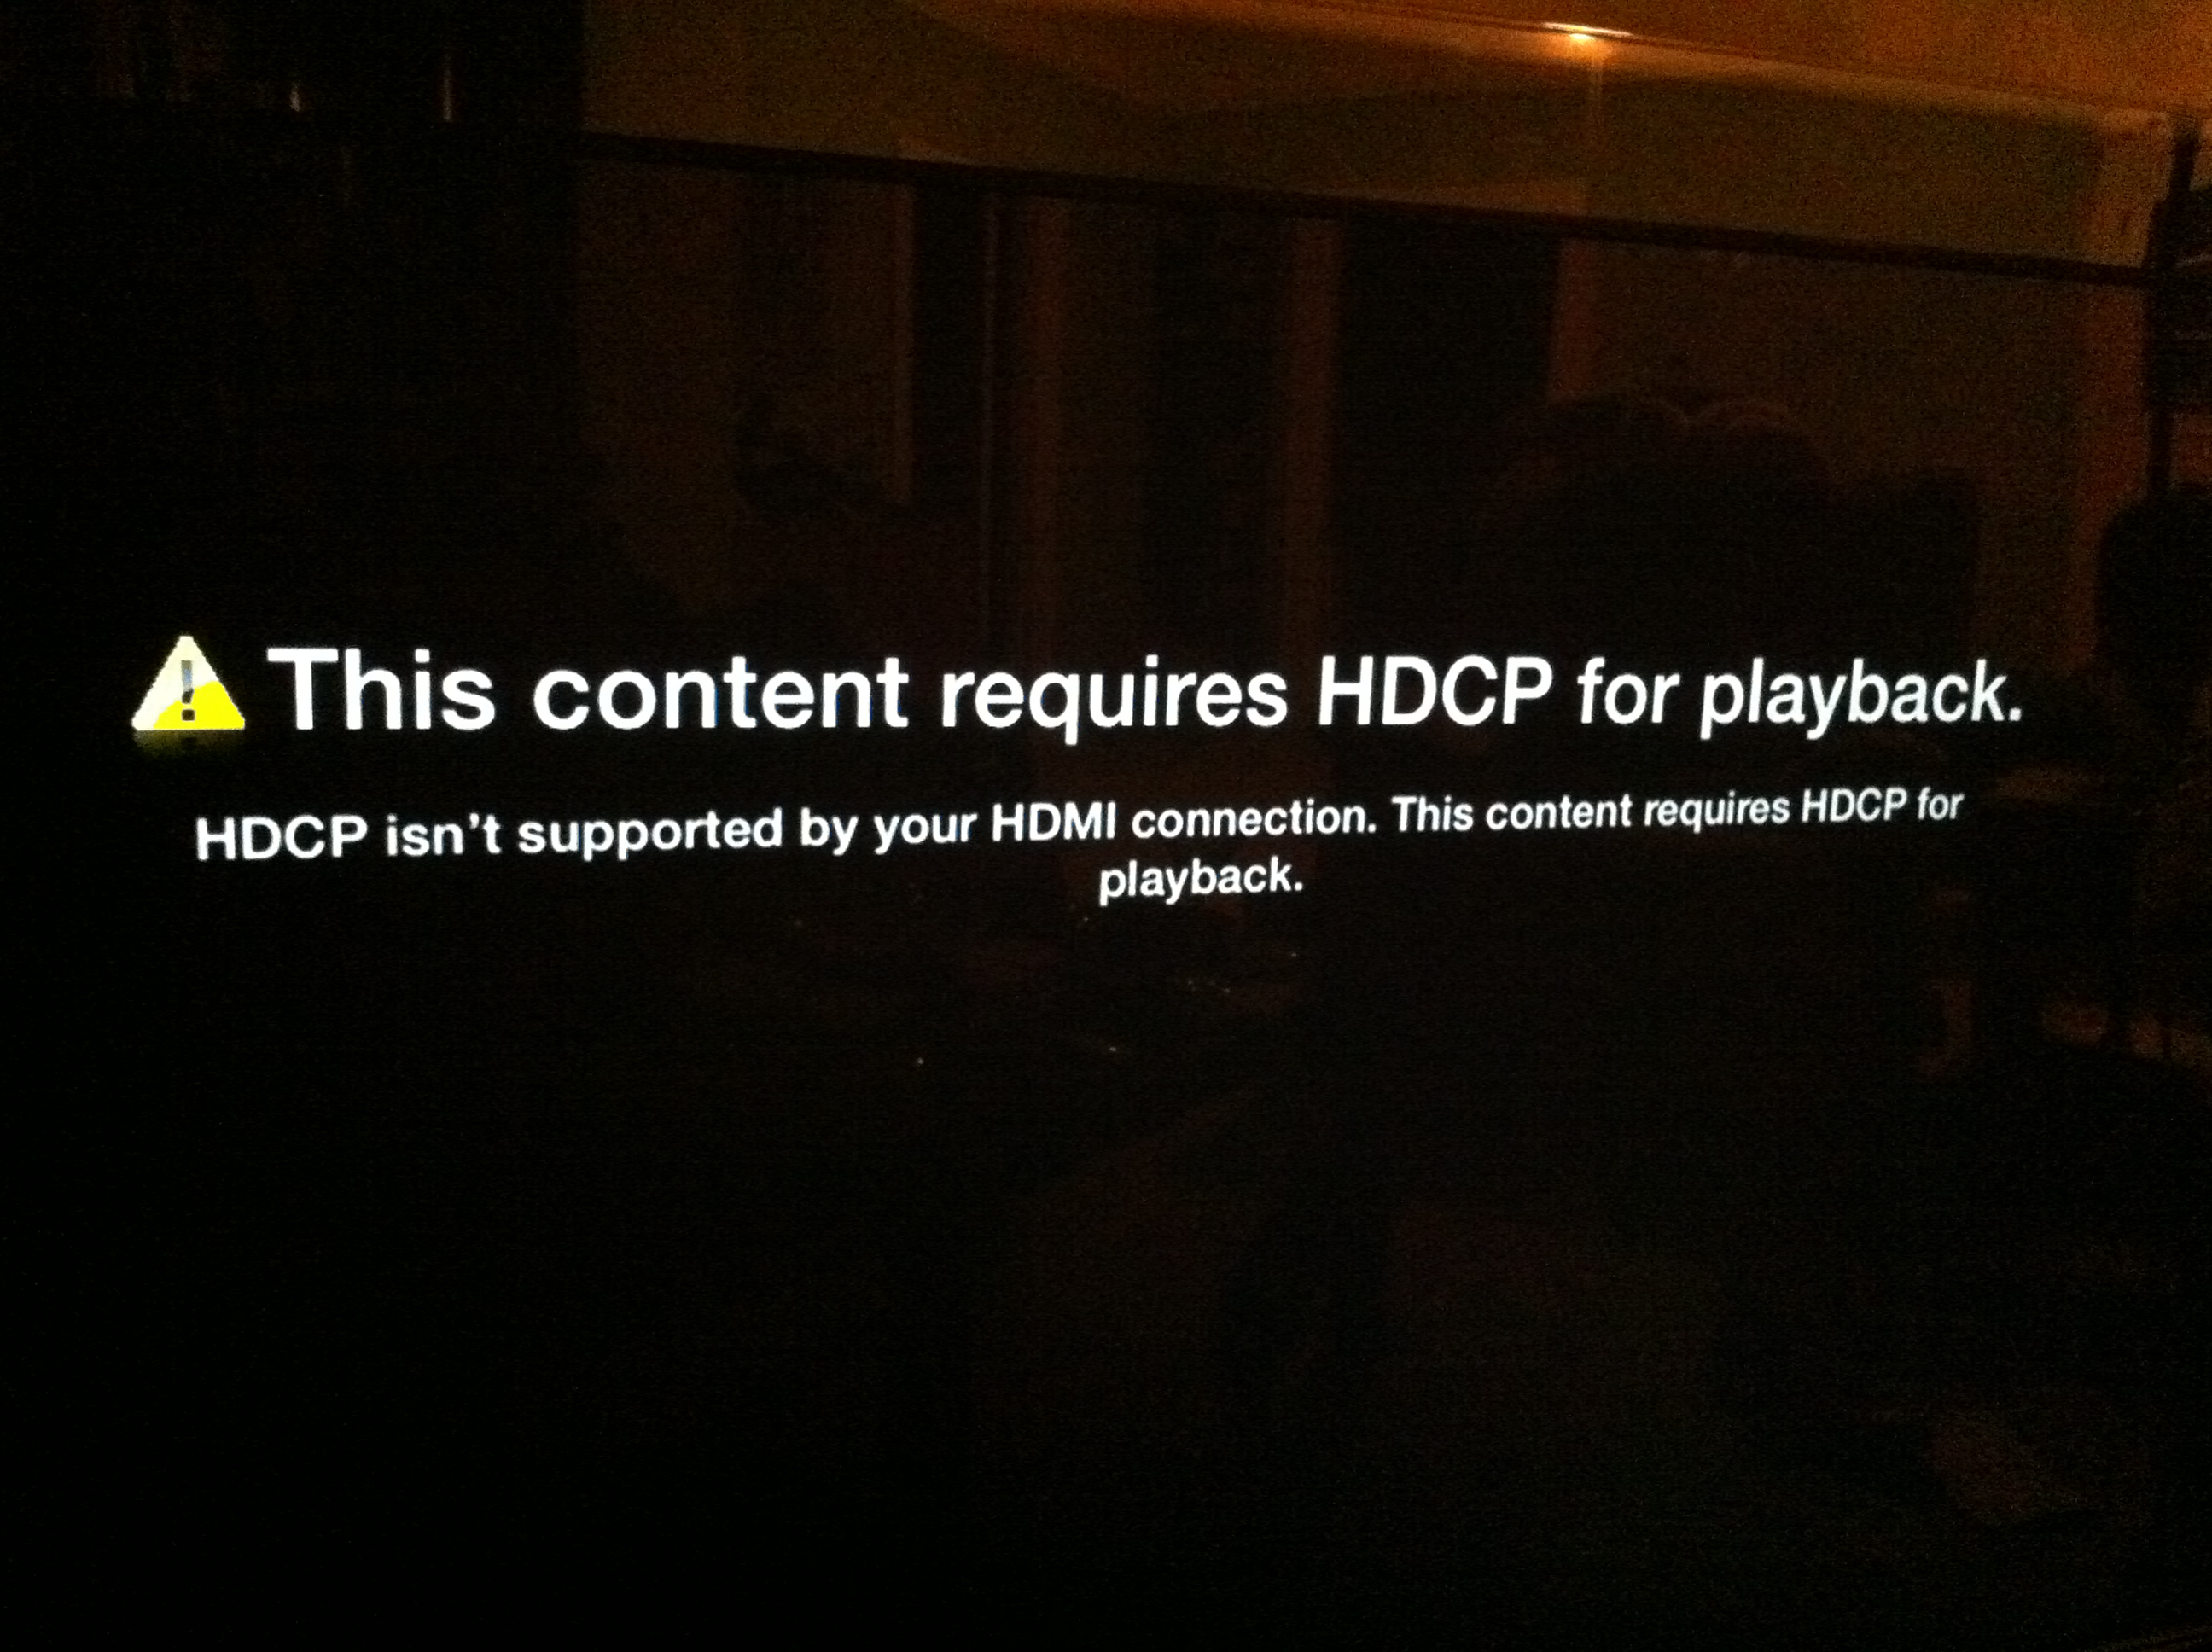 AppleTV and HDCP (Copy Protection)